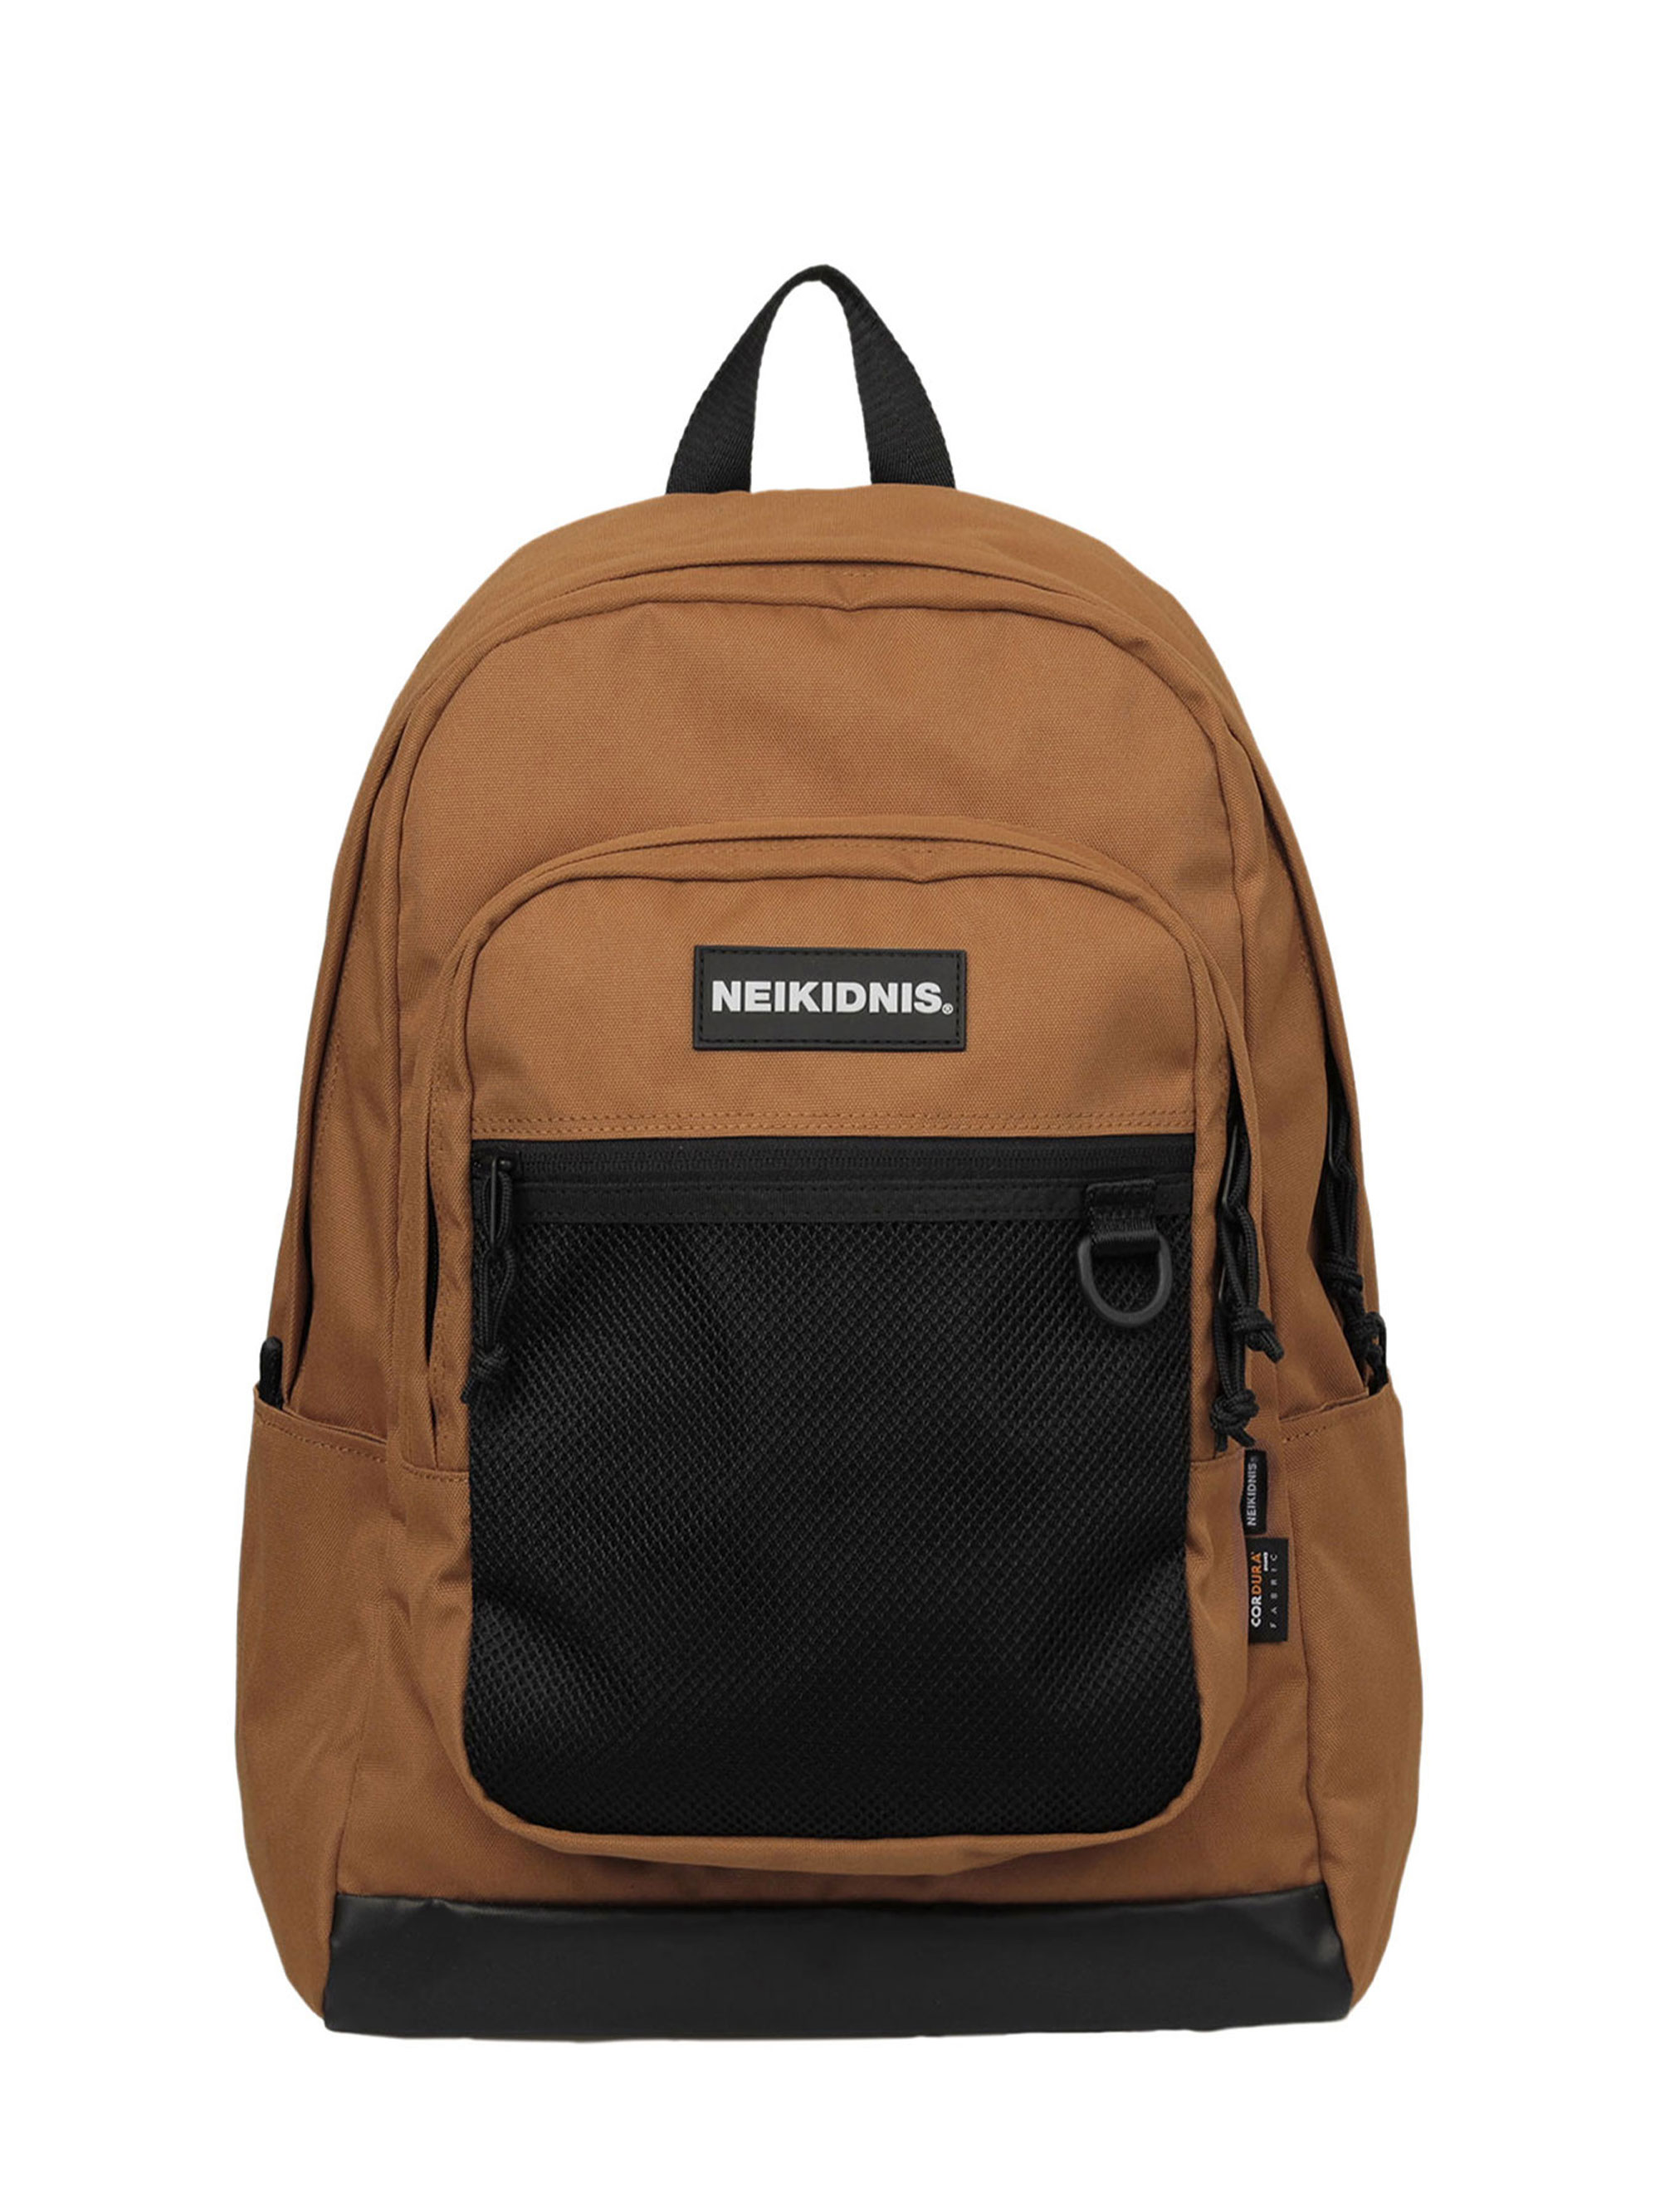 ACADEMY BACKPACK / CAMEL